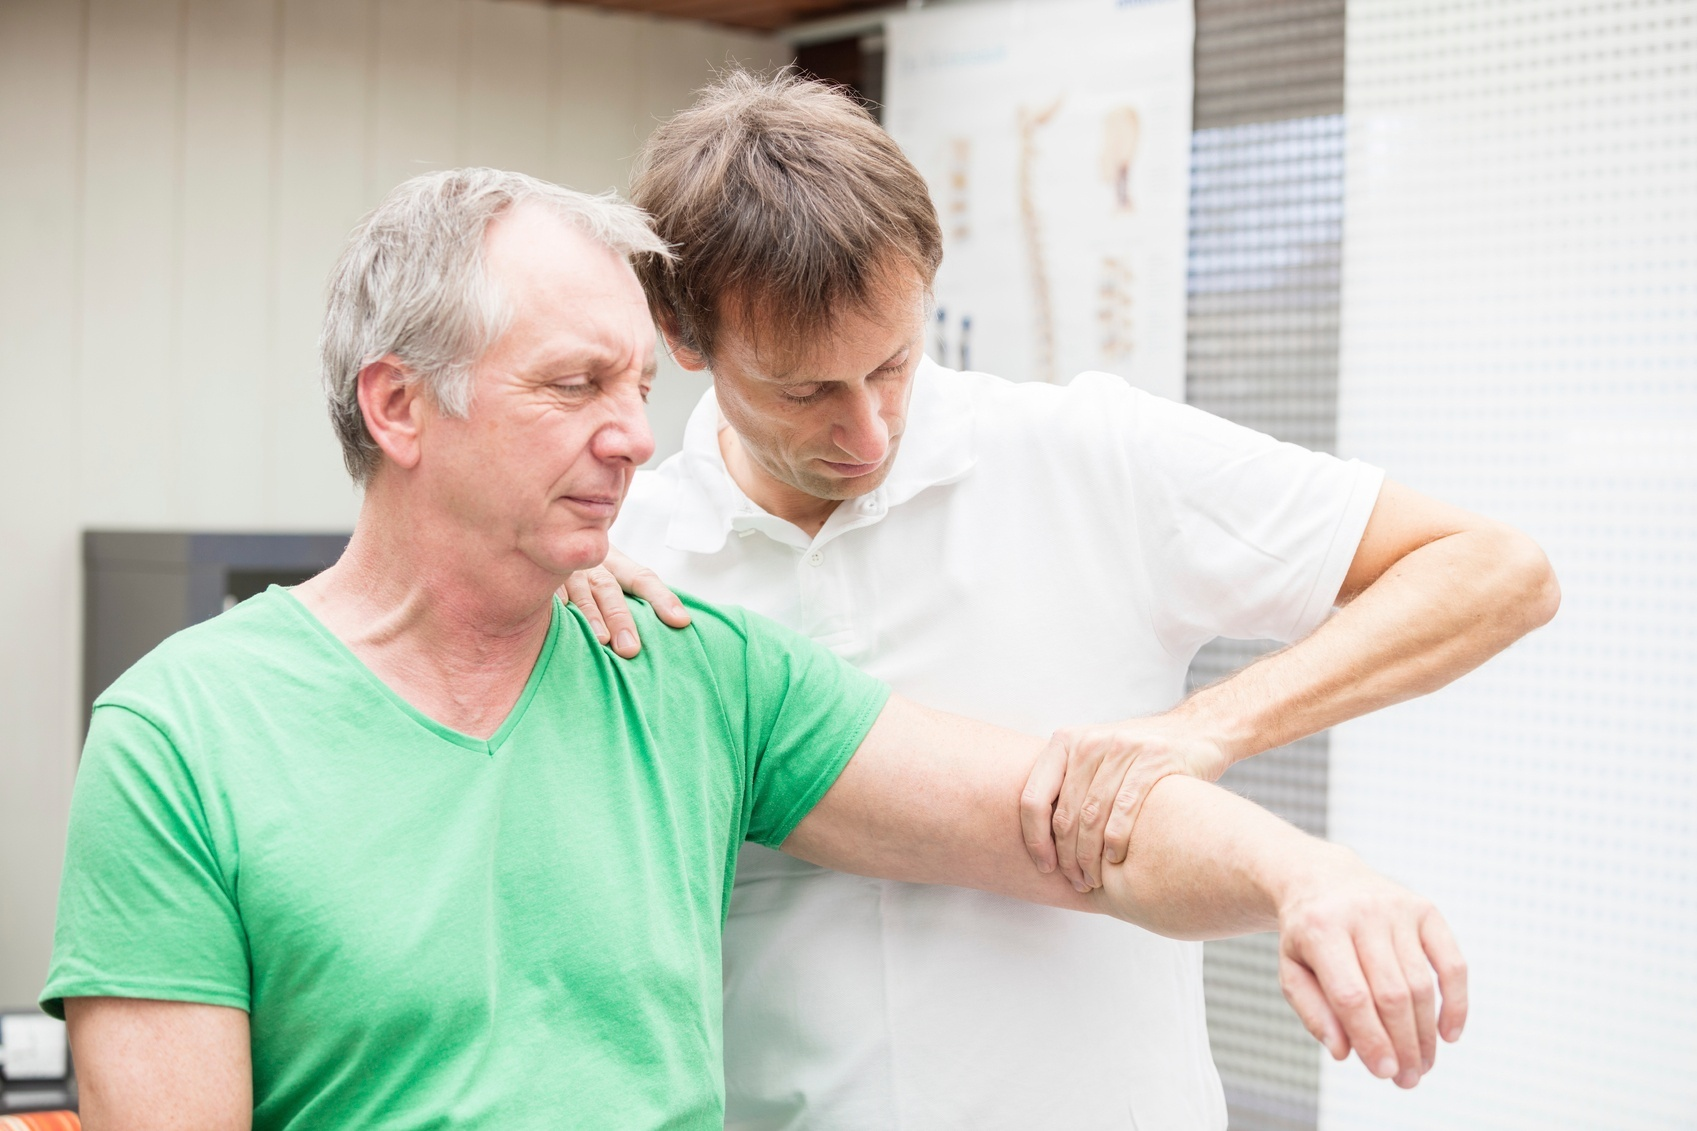 Chiropractor in Belltown Treating Patient